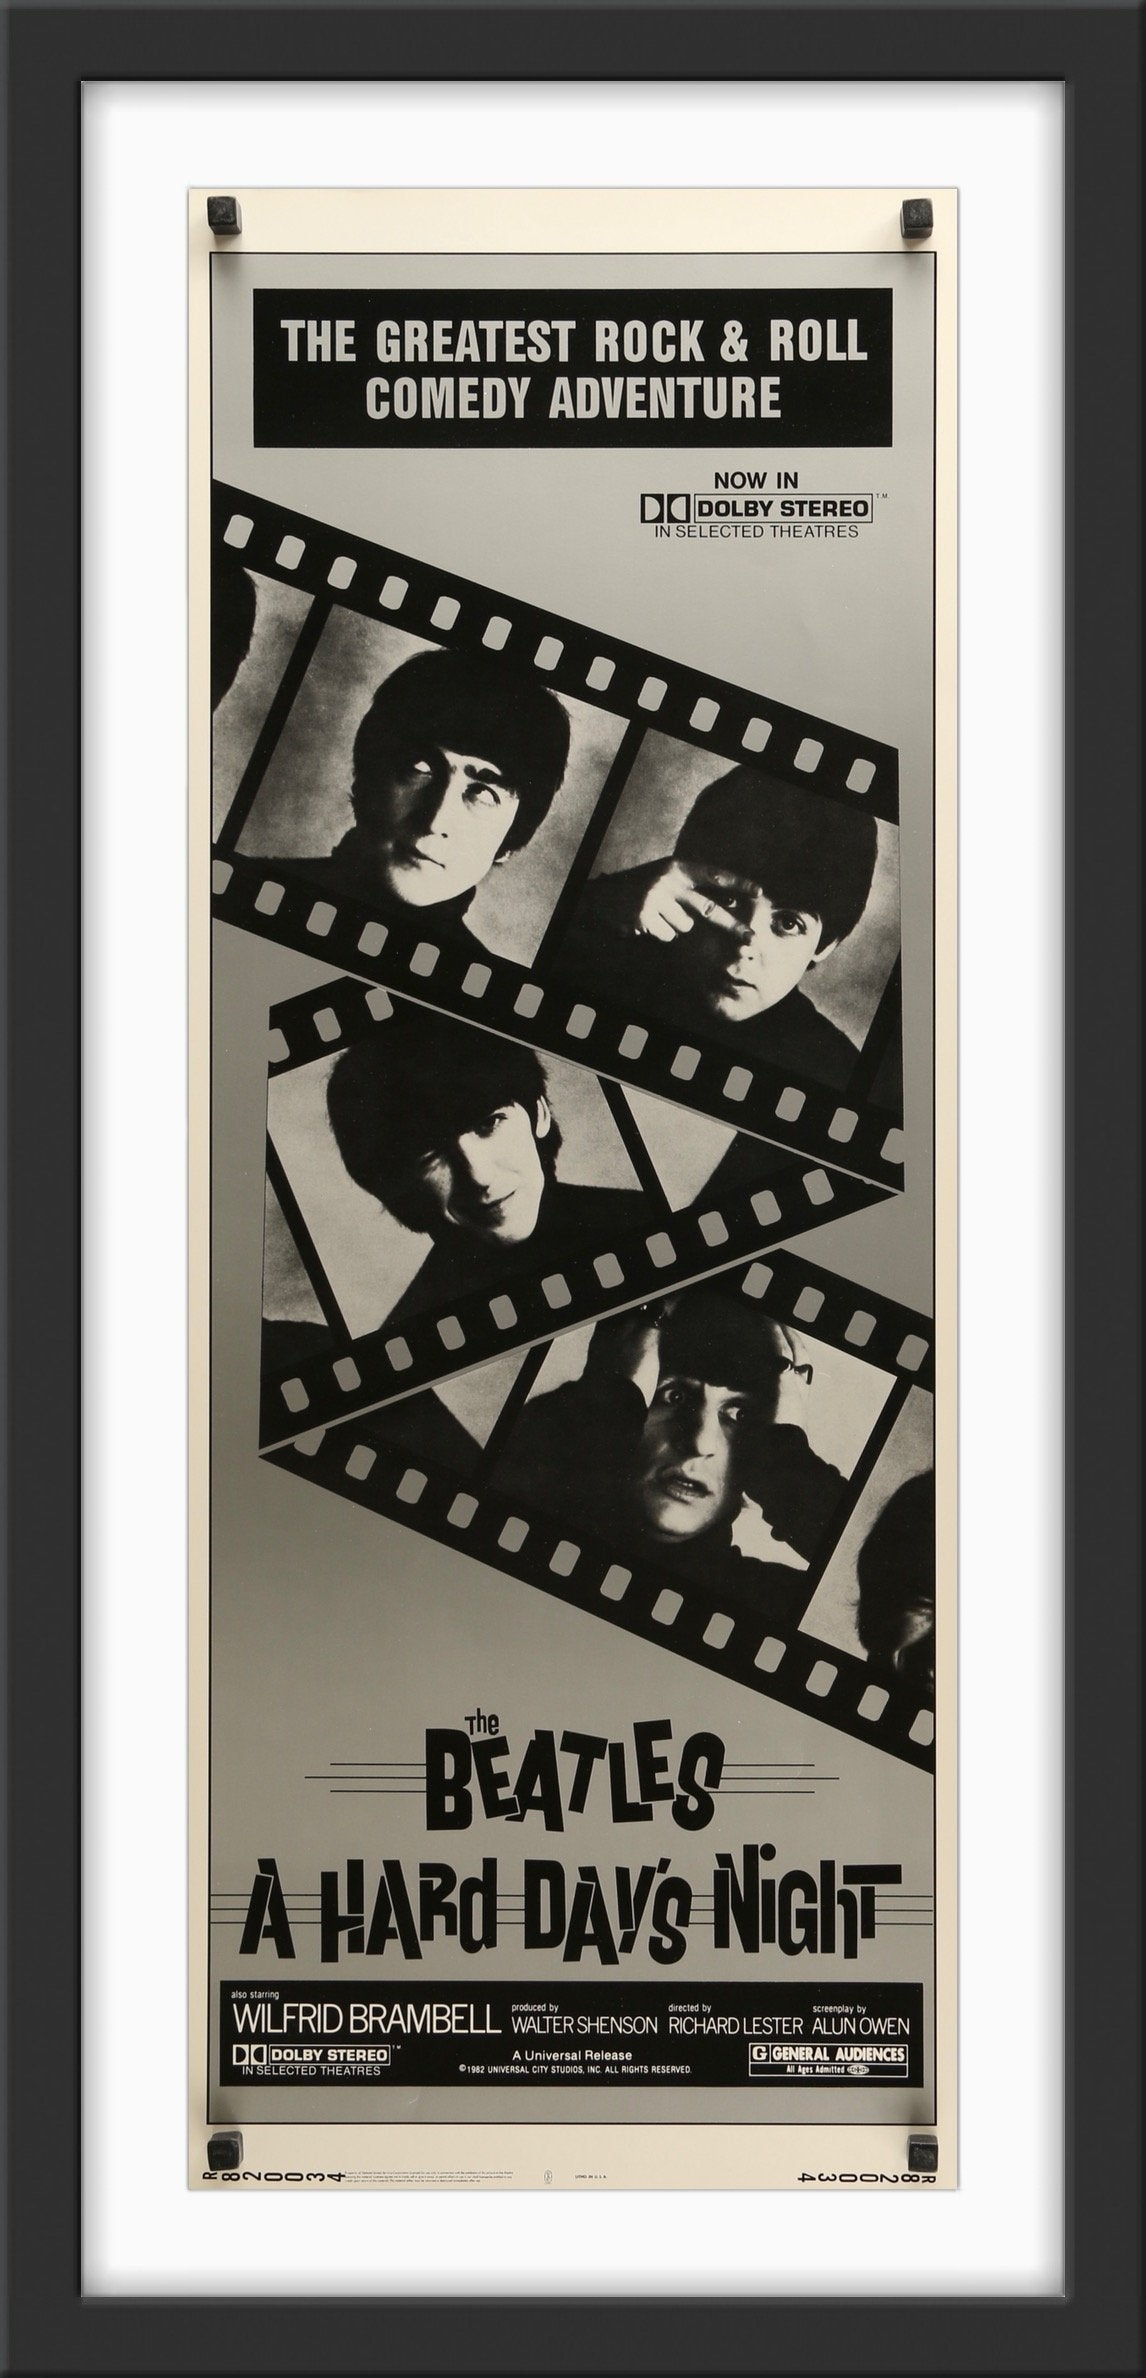 An original U.S. insert movie poster for The Beatles' movie A Hard Day's Night